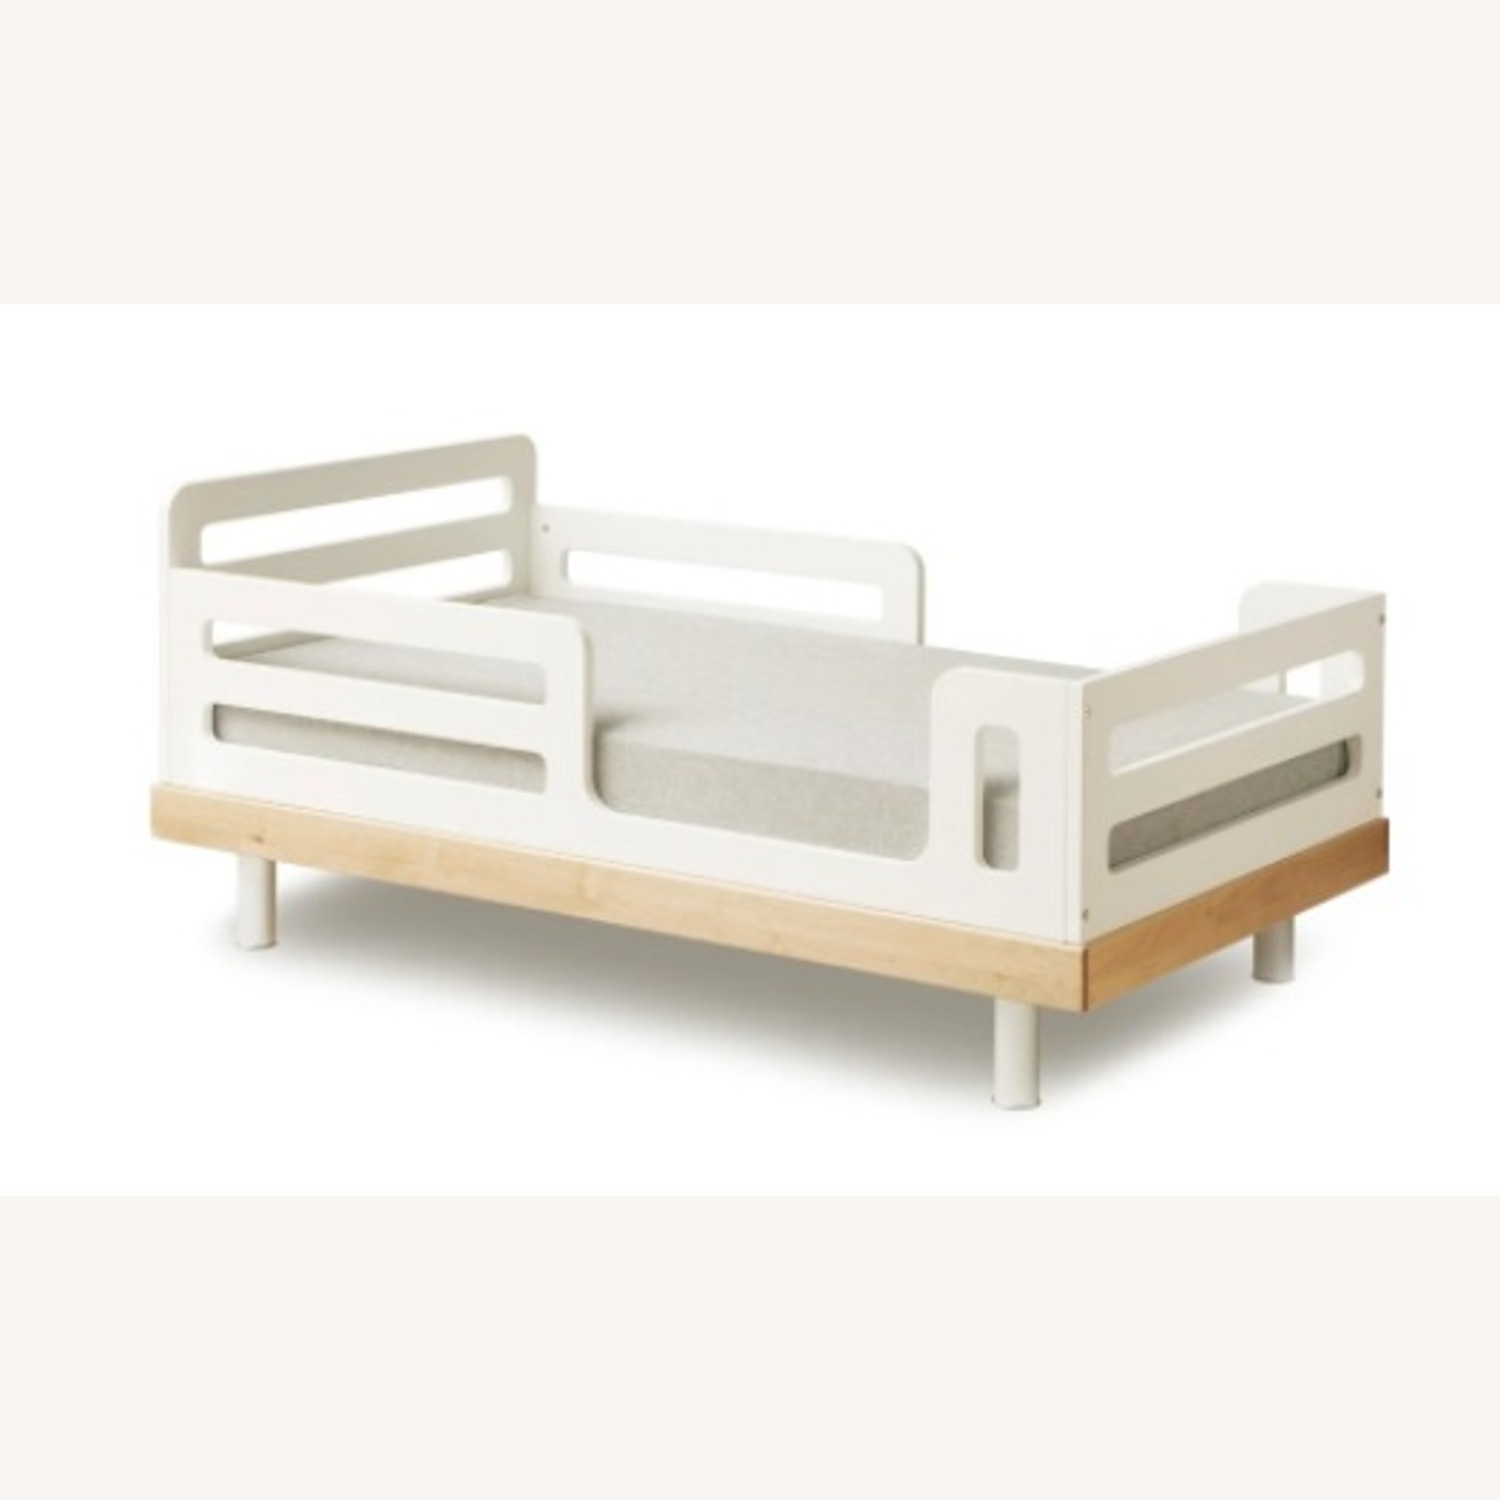 Oeuf Toddler Bed - image-1